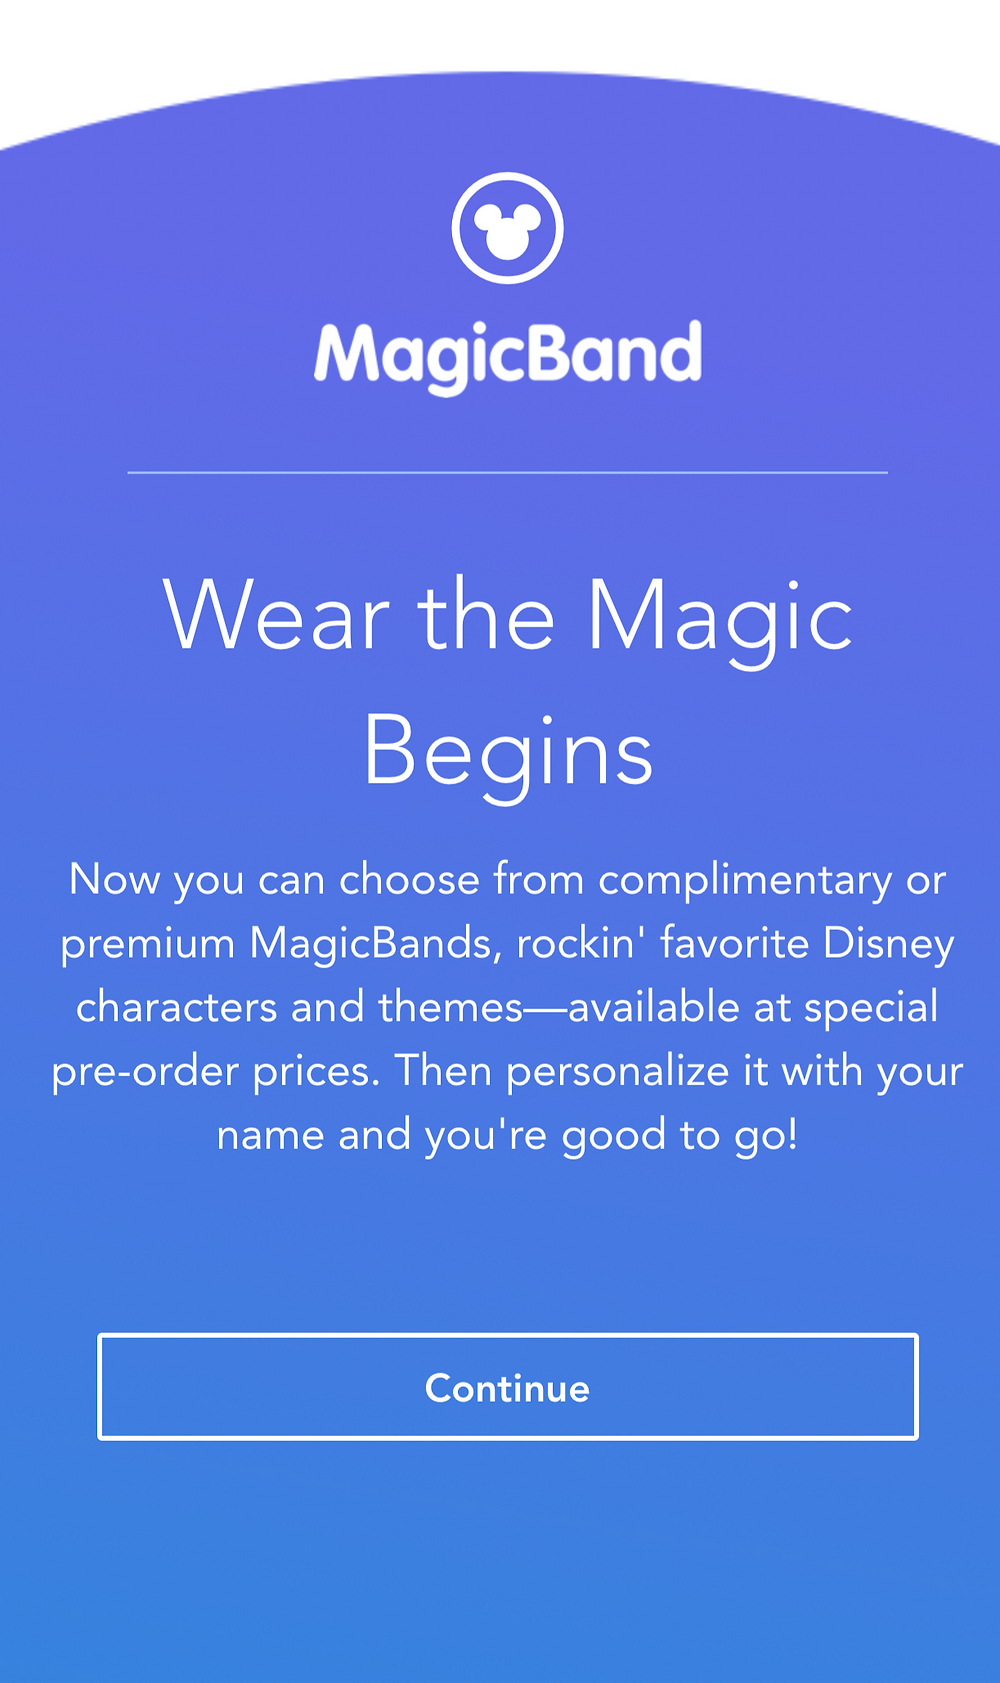 New MagicBand Upgrade Options Available Now at Walt Disney World Resort